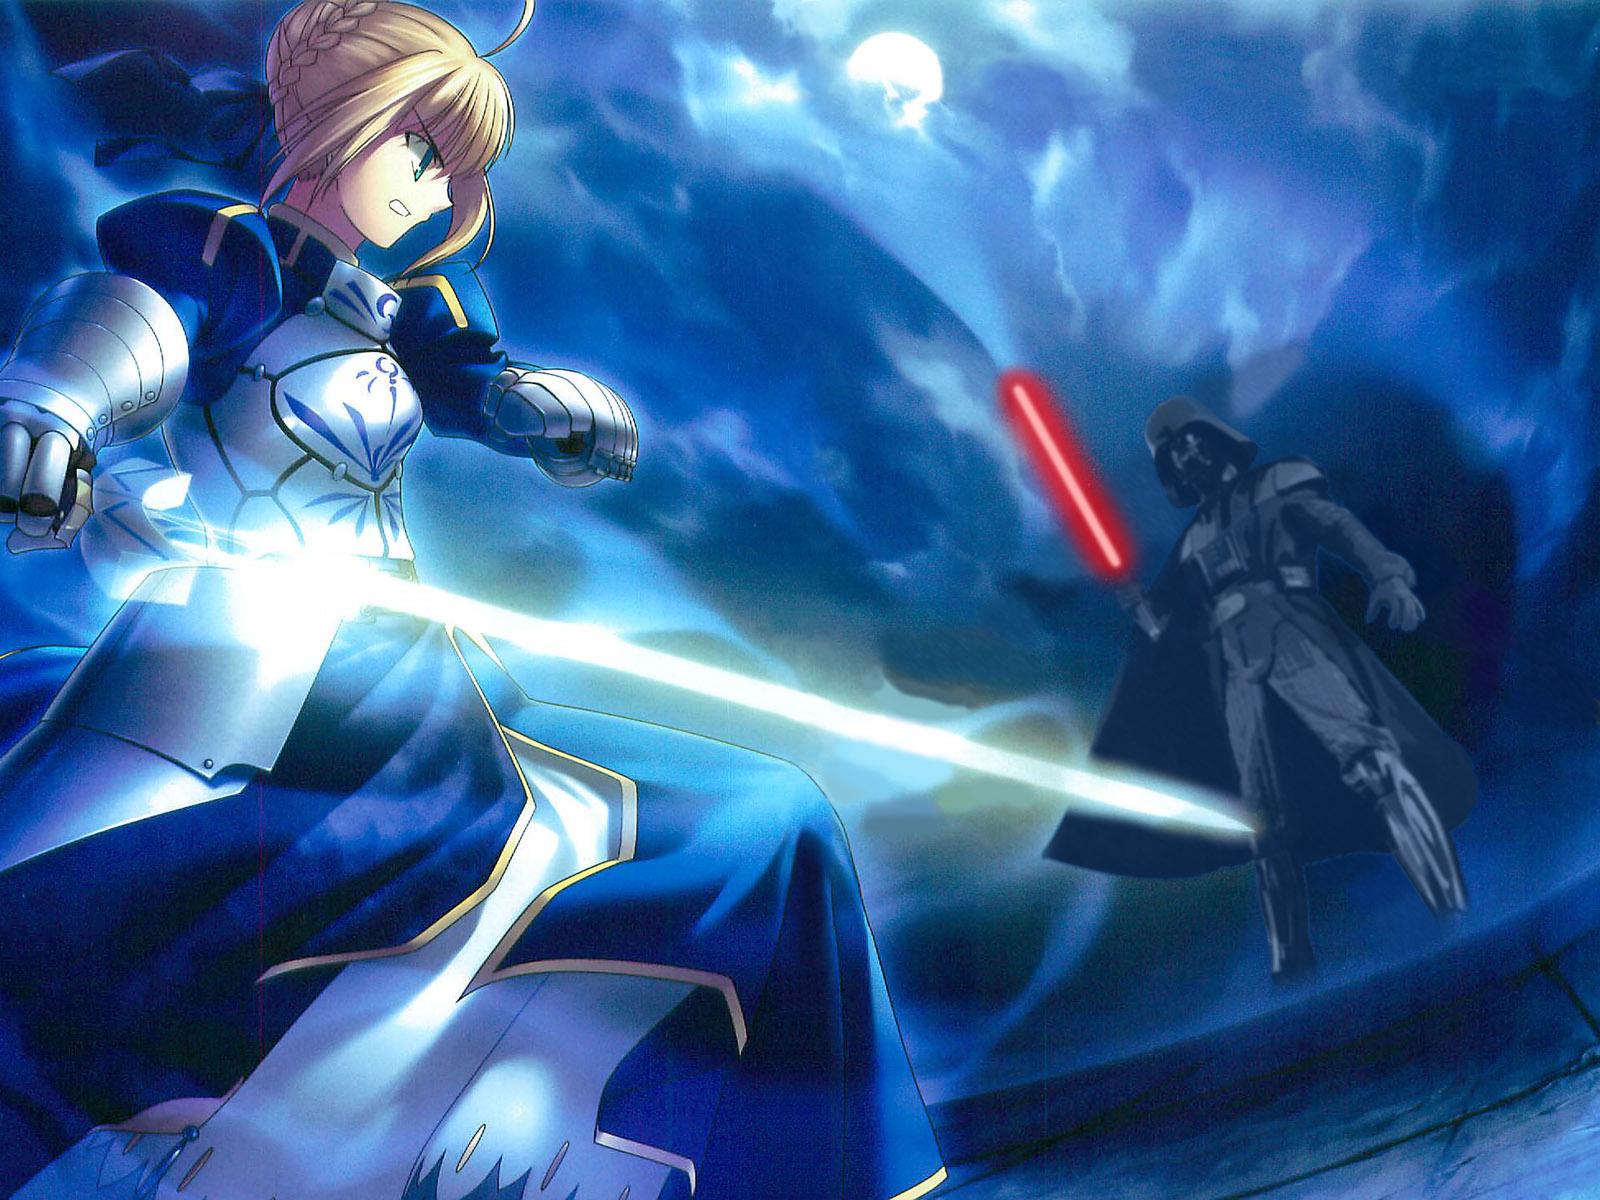 fatestay night photoshop saber star wars konachancom   Konachan 1600x1200